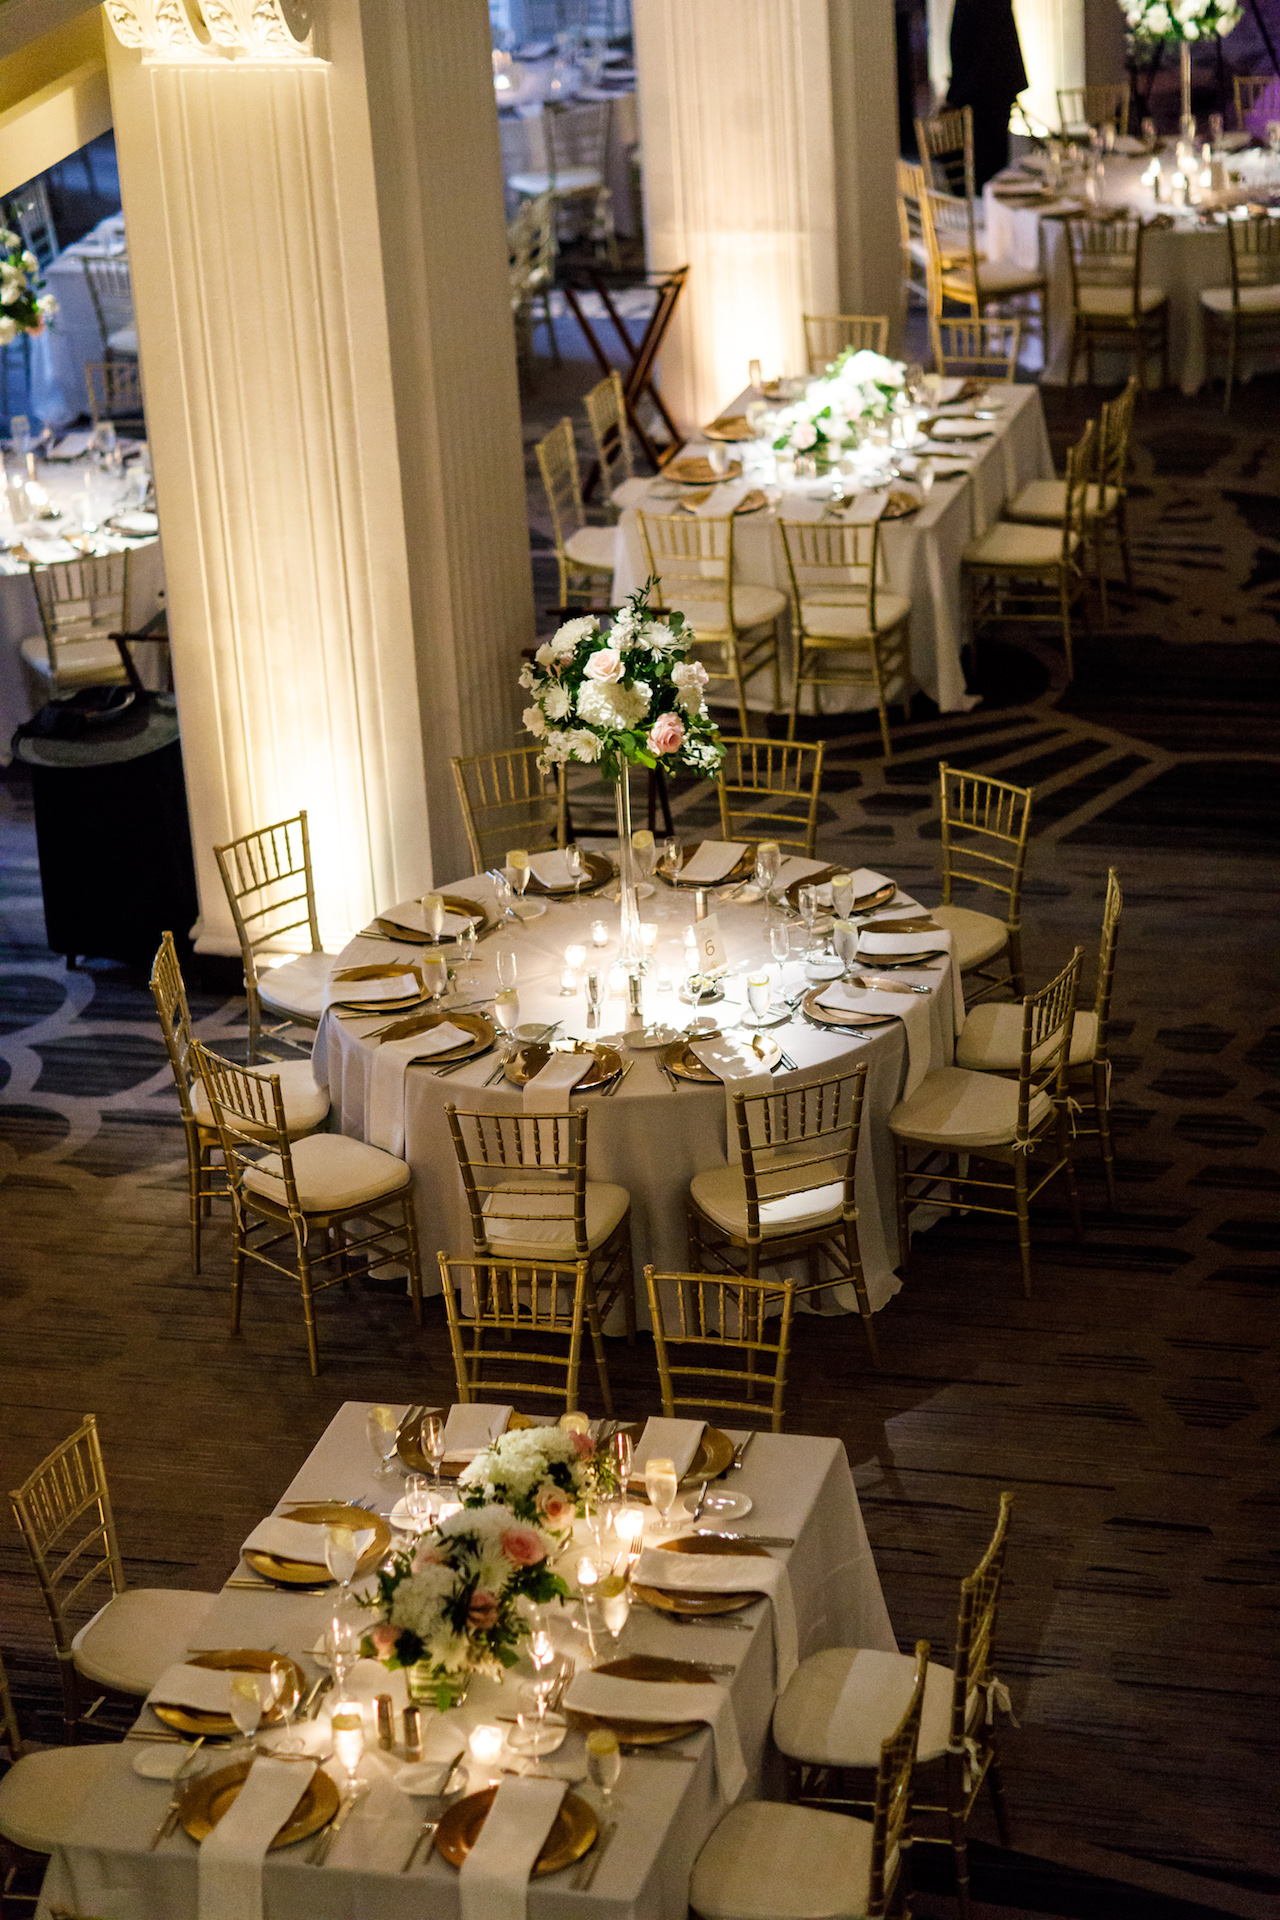 Elegant wedding at The Renaissance Hotel in Cincinnati. Stationery by Poeme